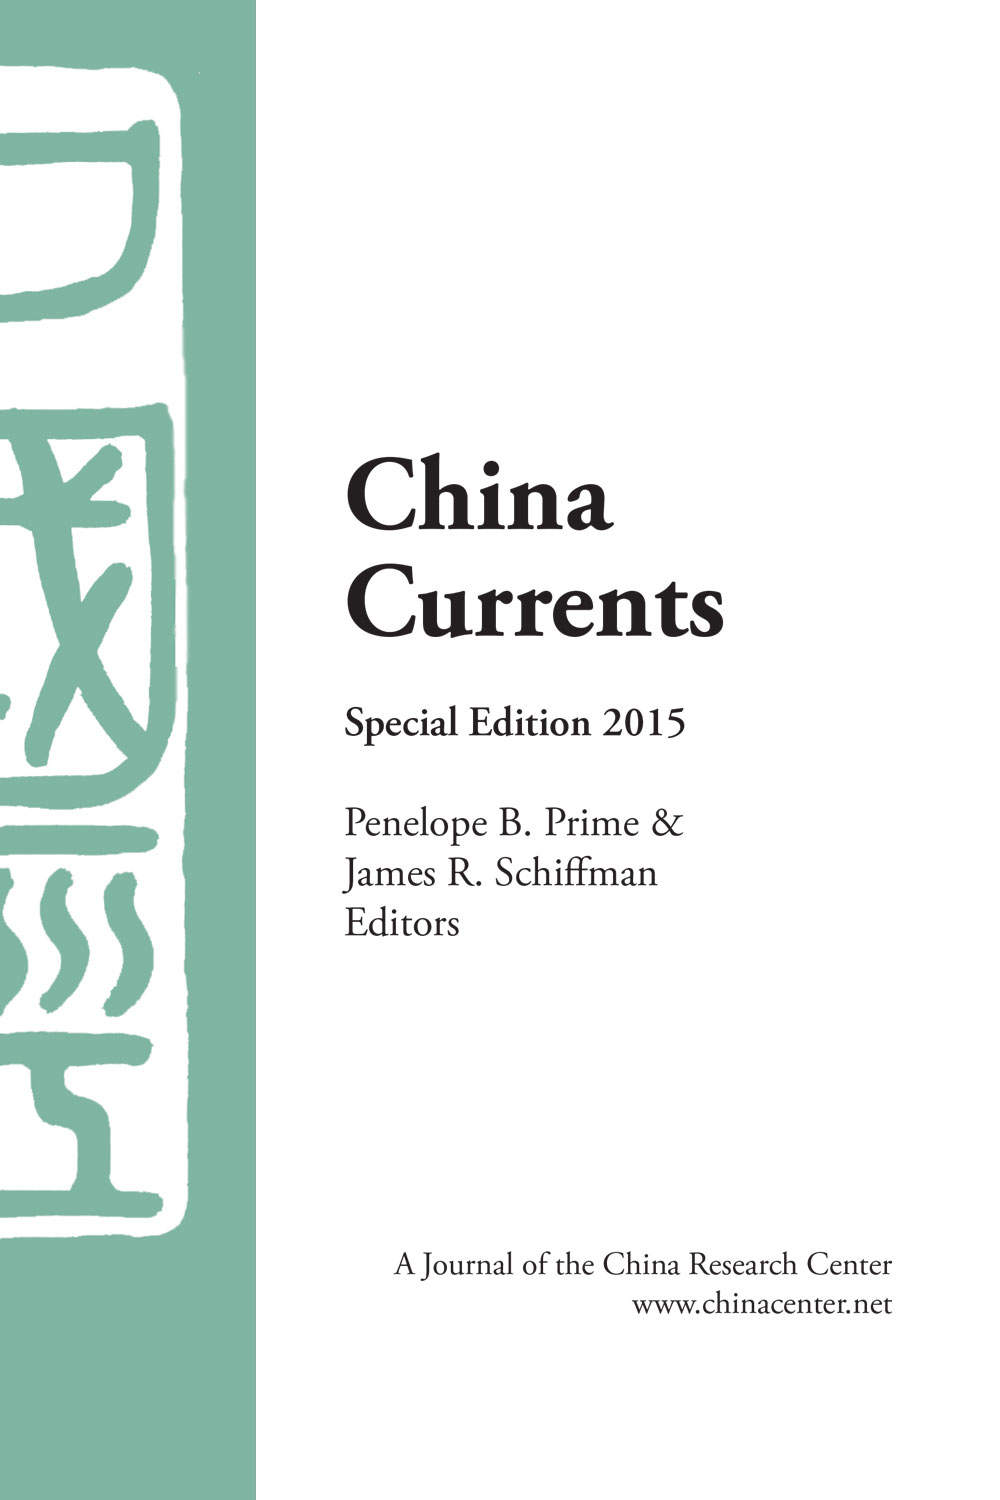 China Currents Special Edition 2015